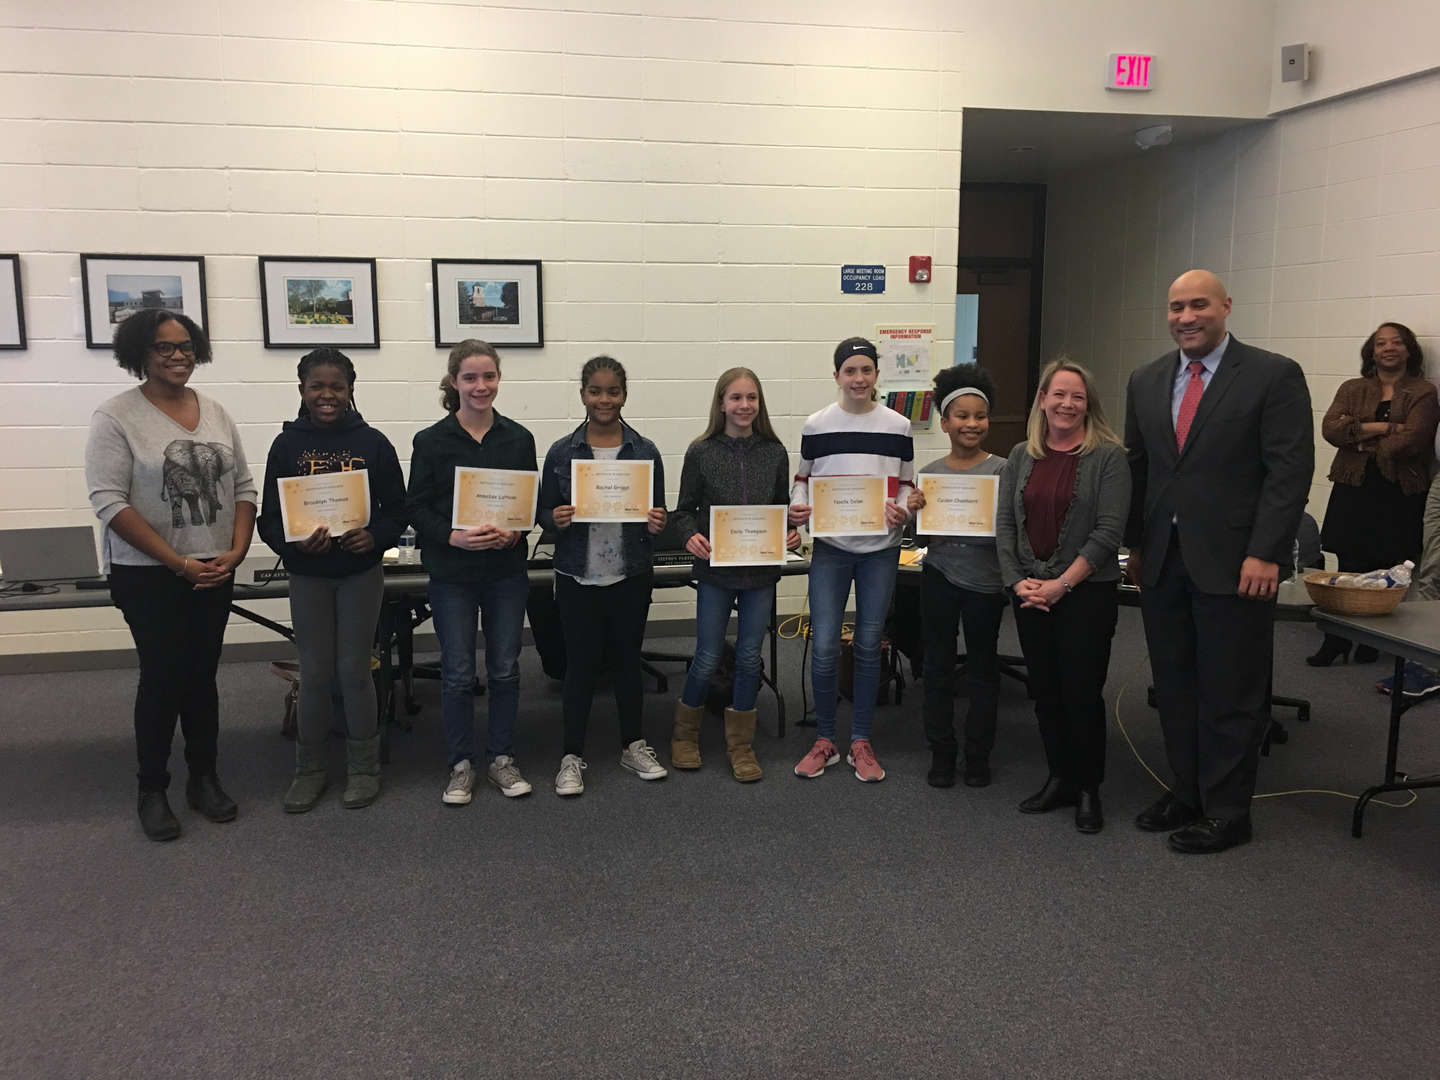 The Board of Education recognizes the District spelling bee participants.